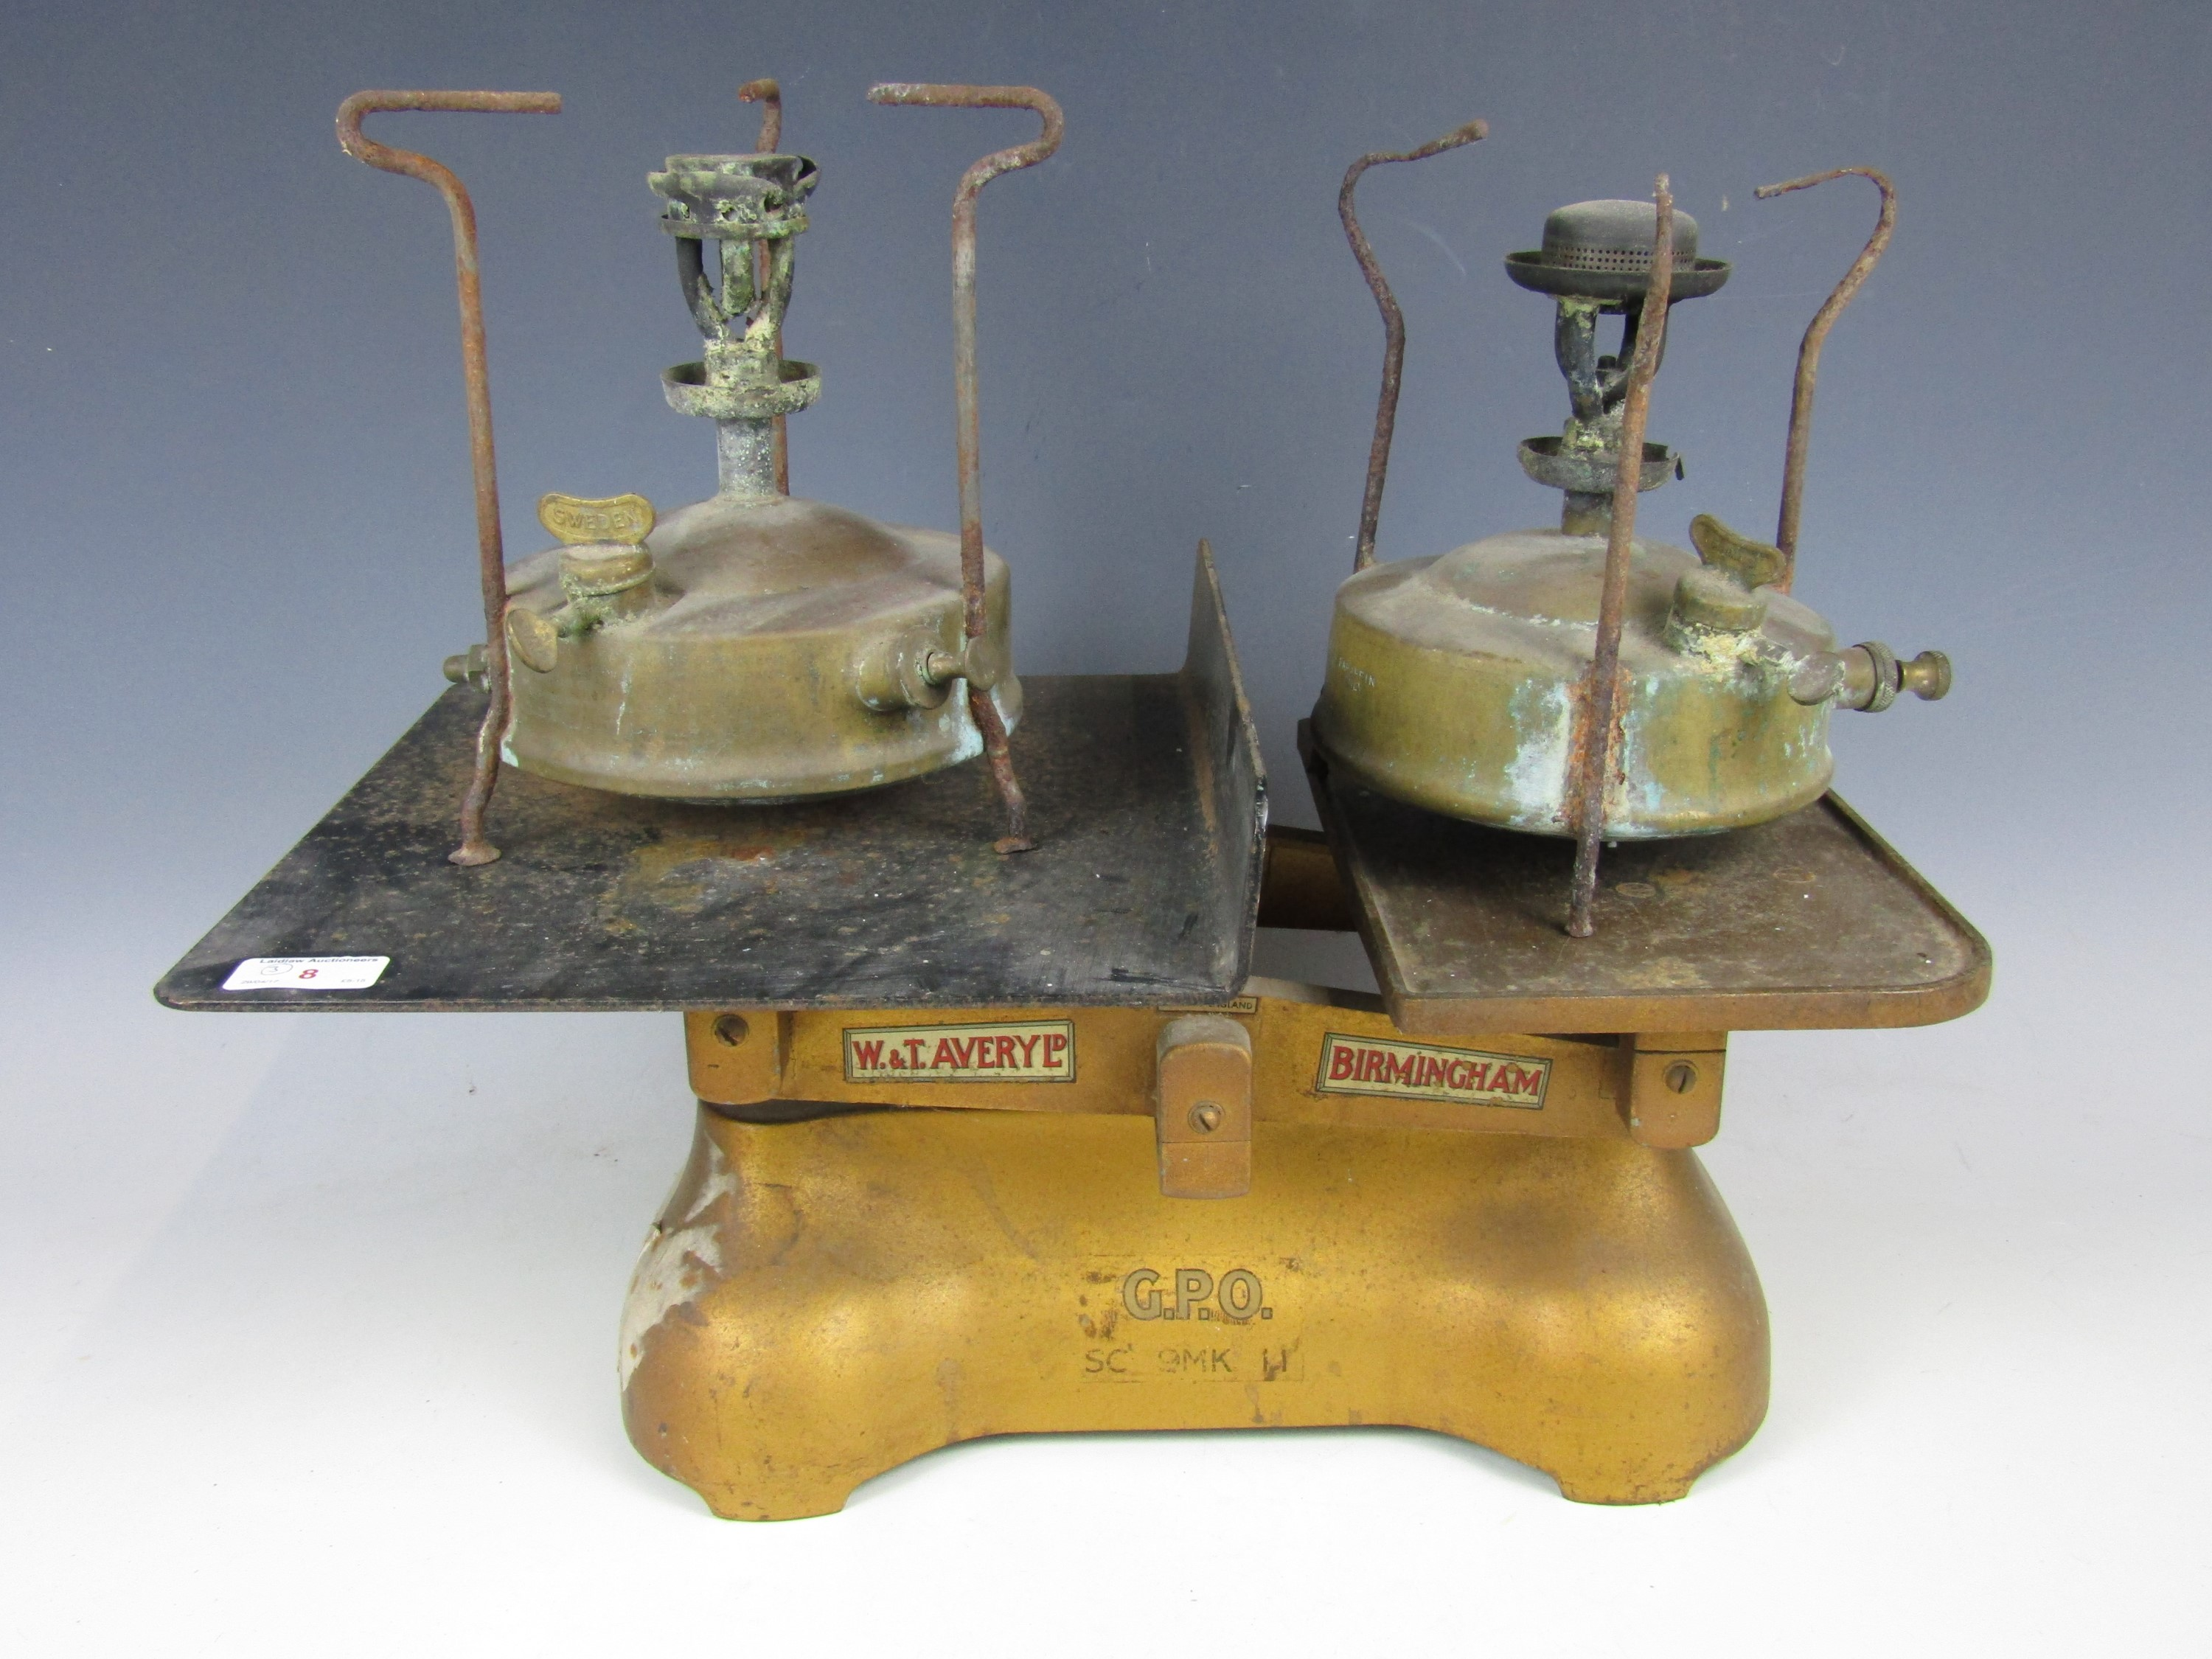 Lot 8 - A vintage set of Avery GPO scales together with two stoves